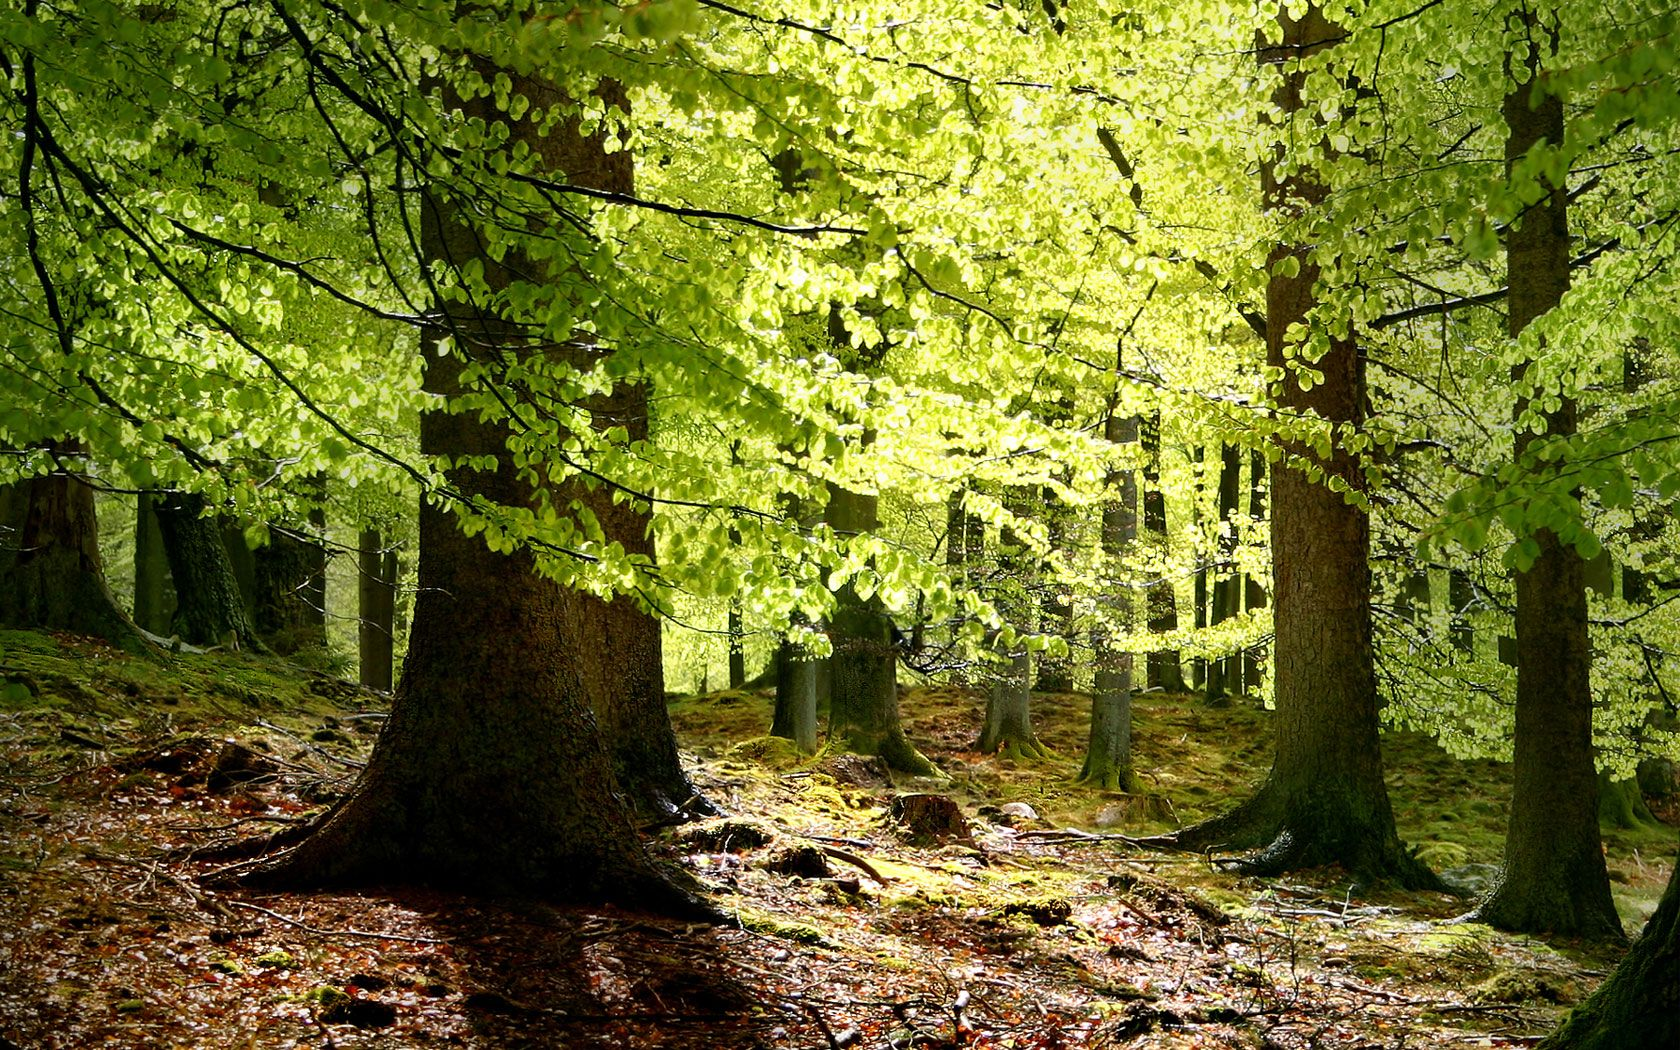 Denmark has beautiful forests perfect for trekking and exploring!